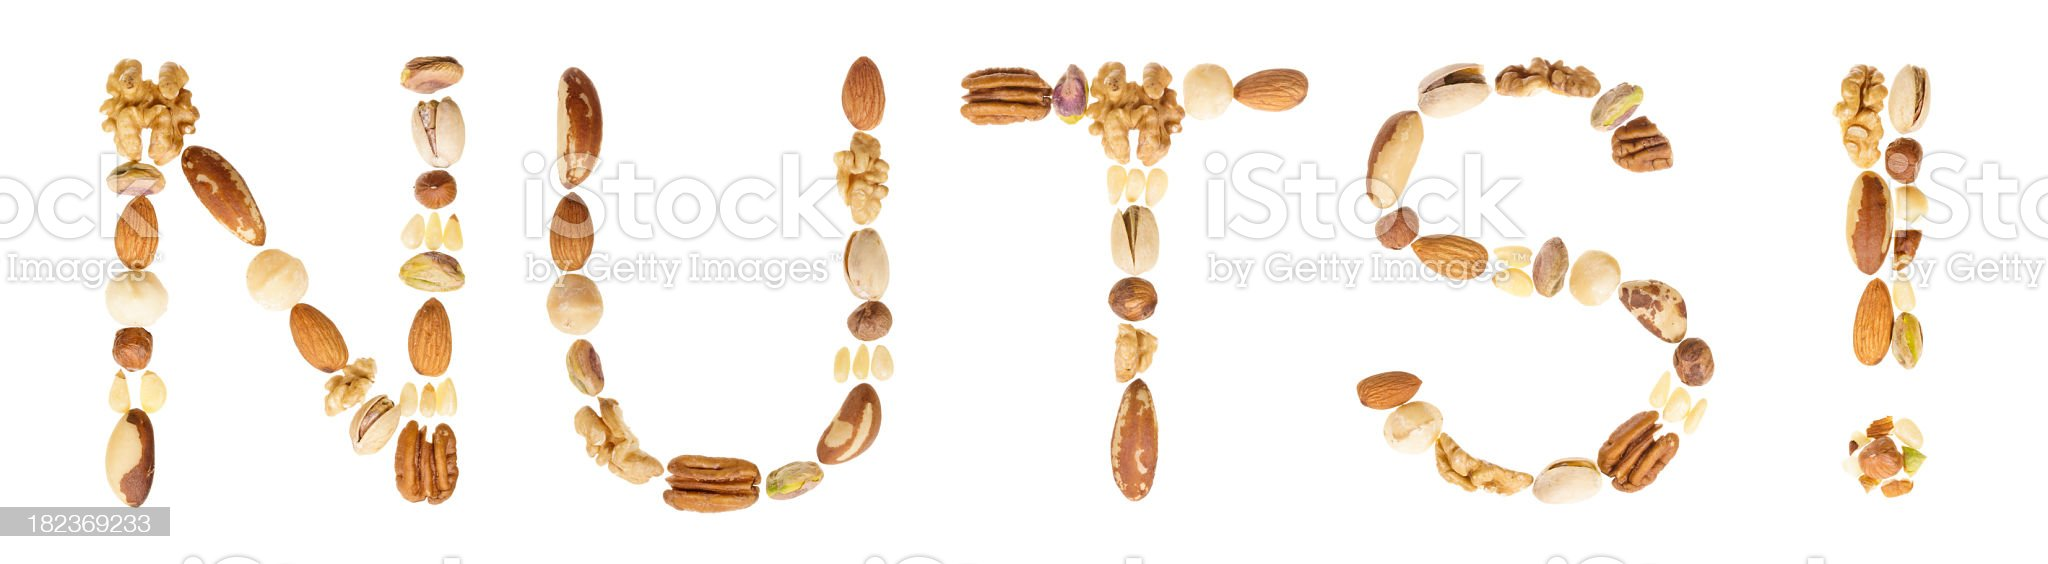 Assorted nuts spell the word royalty-free stock photo